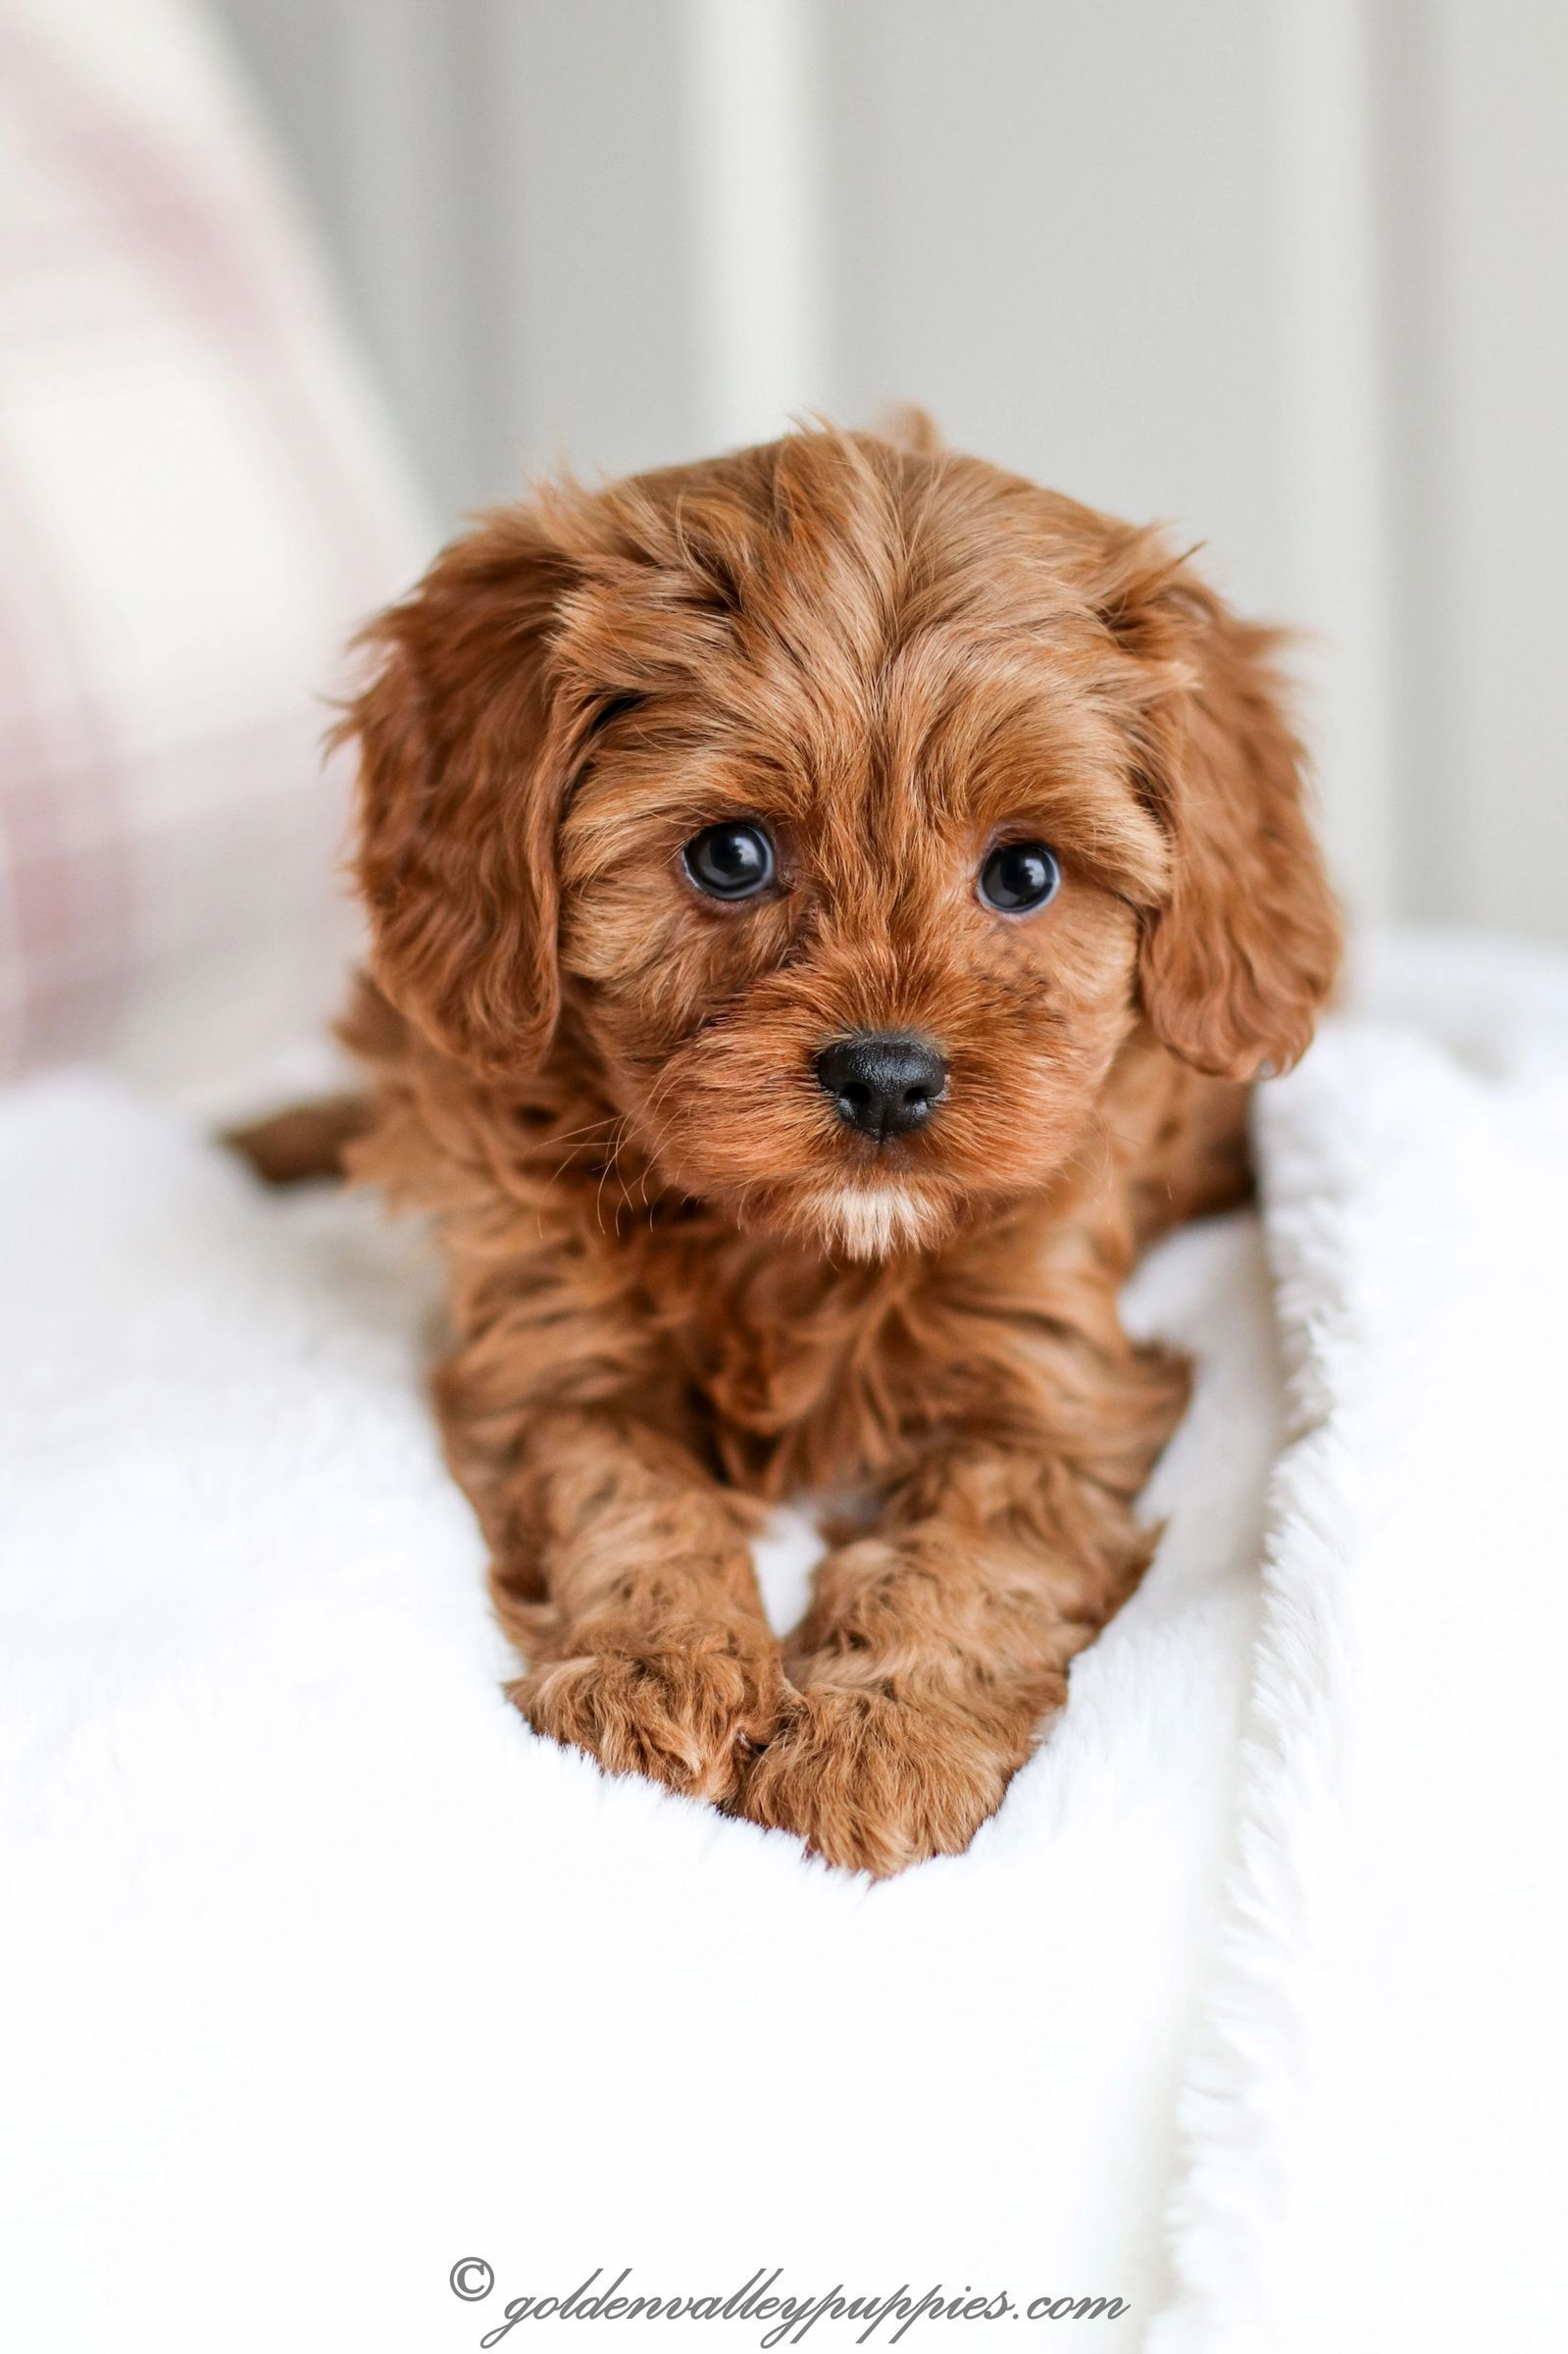 All I Care About Is Dogs Part 1 All I Care About Is Dogs Love Dogs Forever Cute Animals Cute Baby Animals Puppies